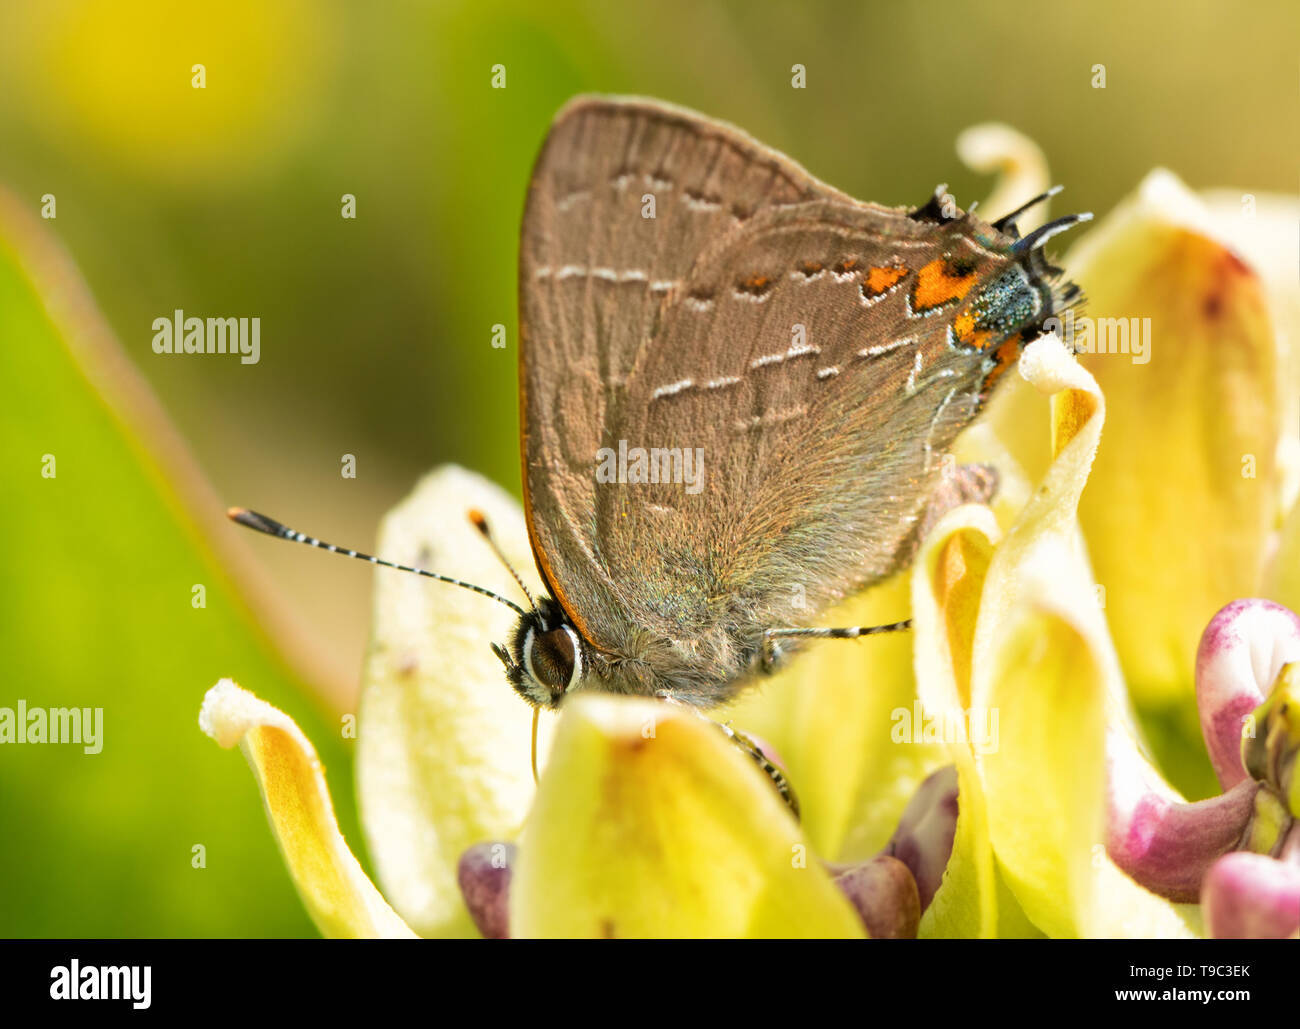 Tiny Northern Southern Hairstreak butterfly feeding on a milkweed flower in spring - Stock Image